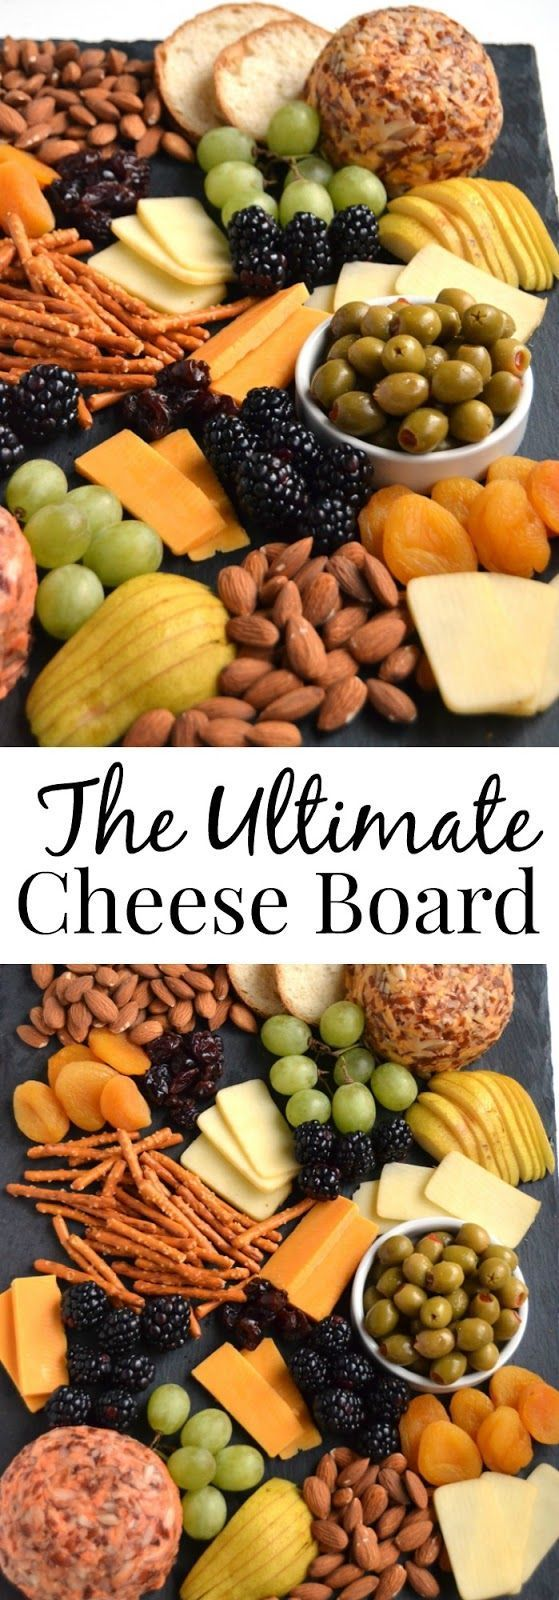 The Ultimate Cheese Board is perfect for entertaining, takes 5 minutes to put together and is filled with your favorite cheeses, nuts, dried fruits, crackers, olives and more! http://www.nutritionistreviews.com